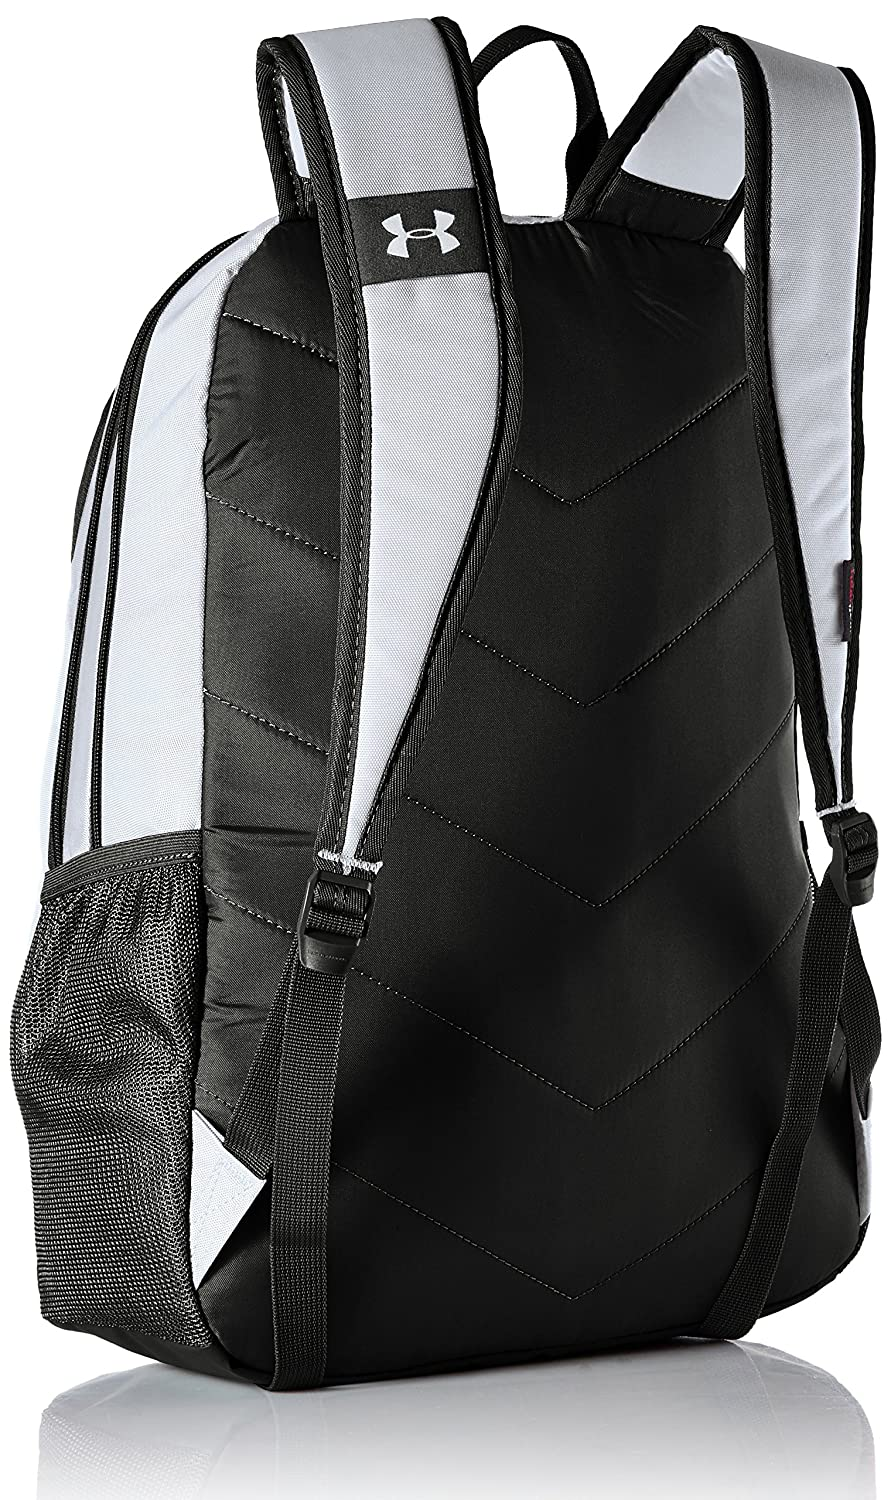 ce05f7fb01 Under Armour Boy s Storm Scrimmage Backpack Black (001) Silver One Size  Under Armour larger image